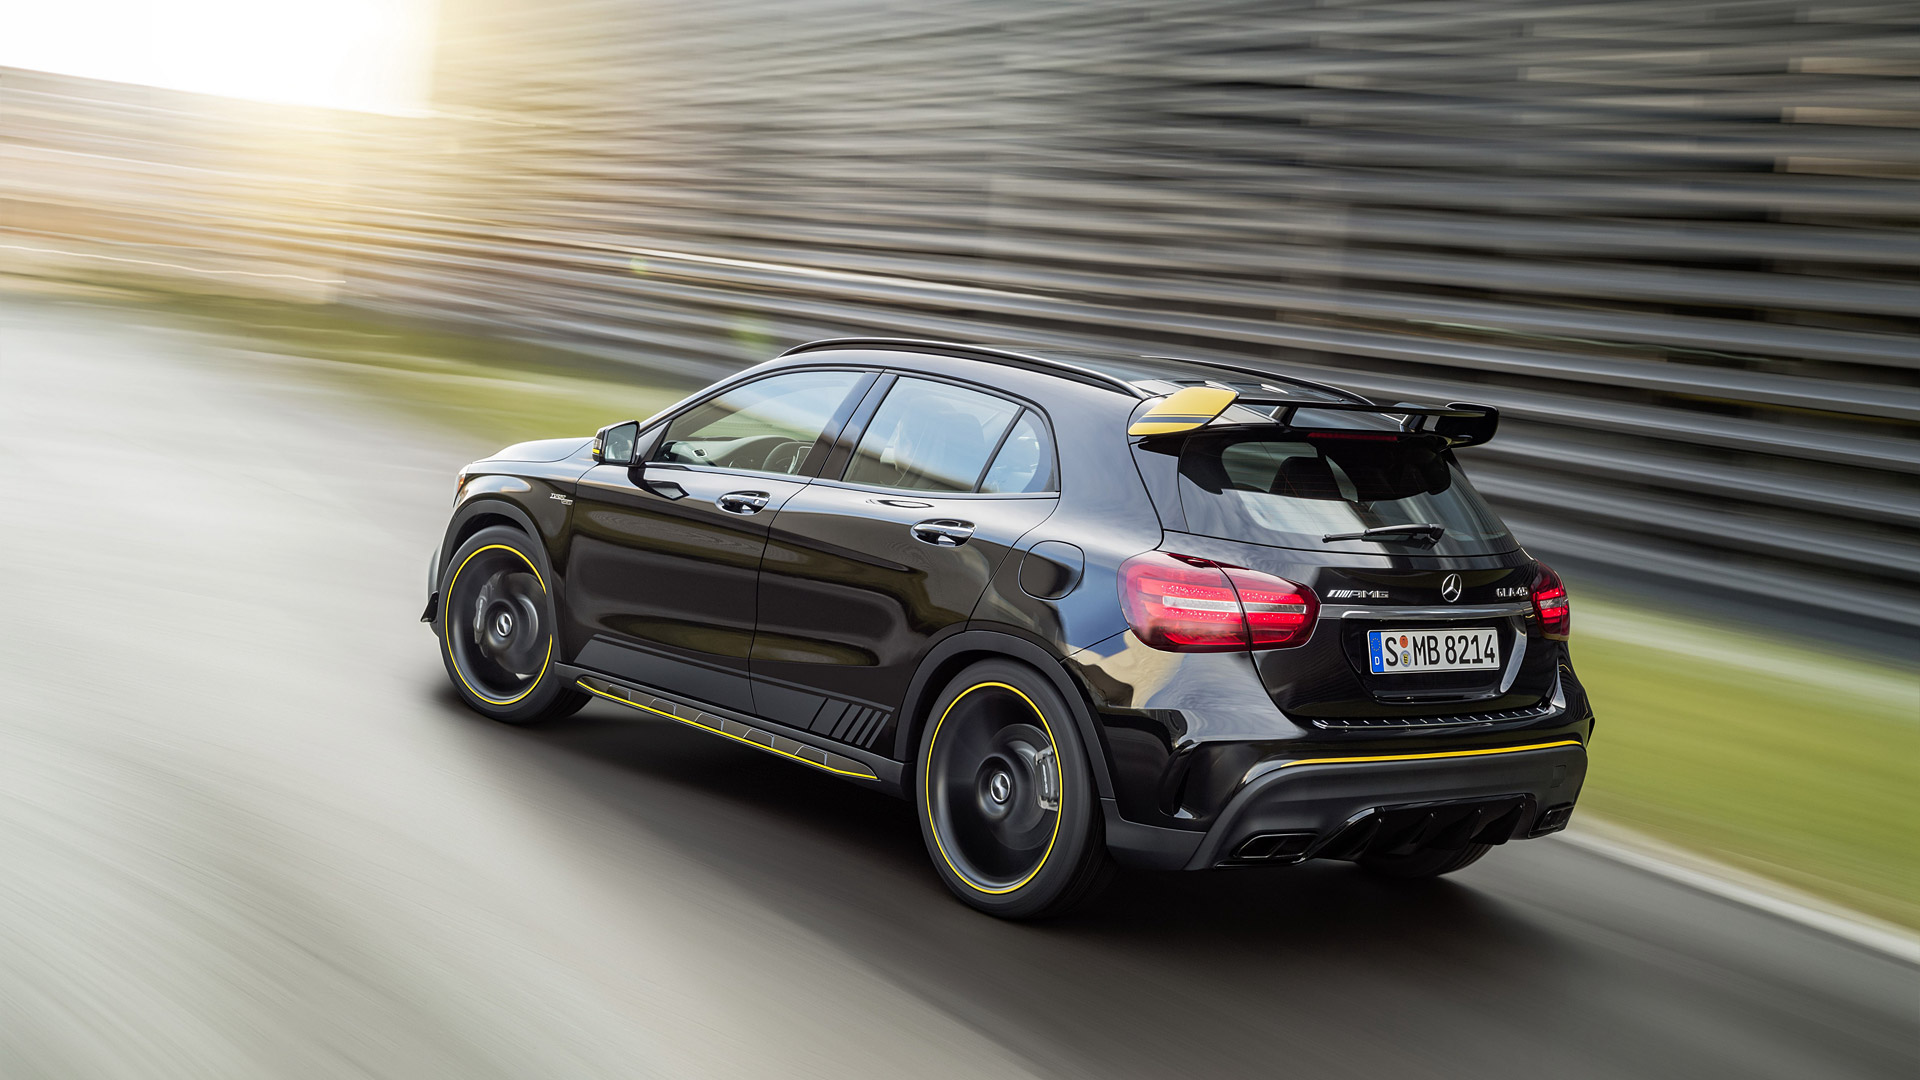 2018 Mercedes Benz GLA45 AMG Wallpapers HD Images   WSupercars 1920x1080